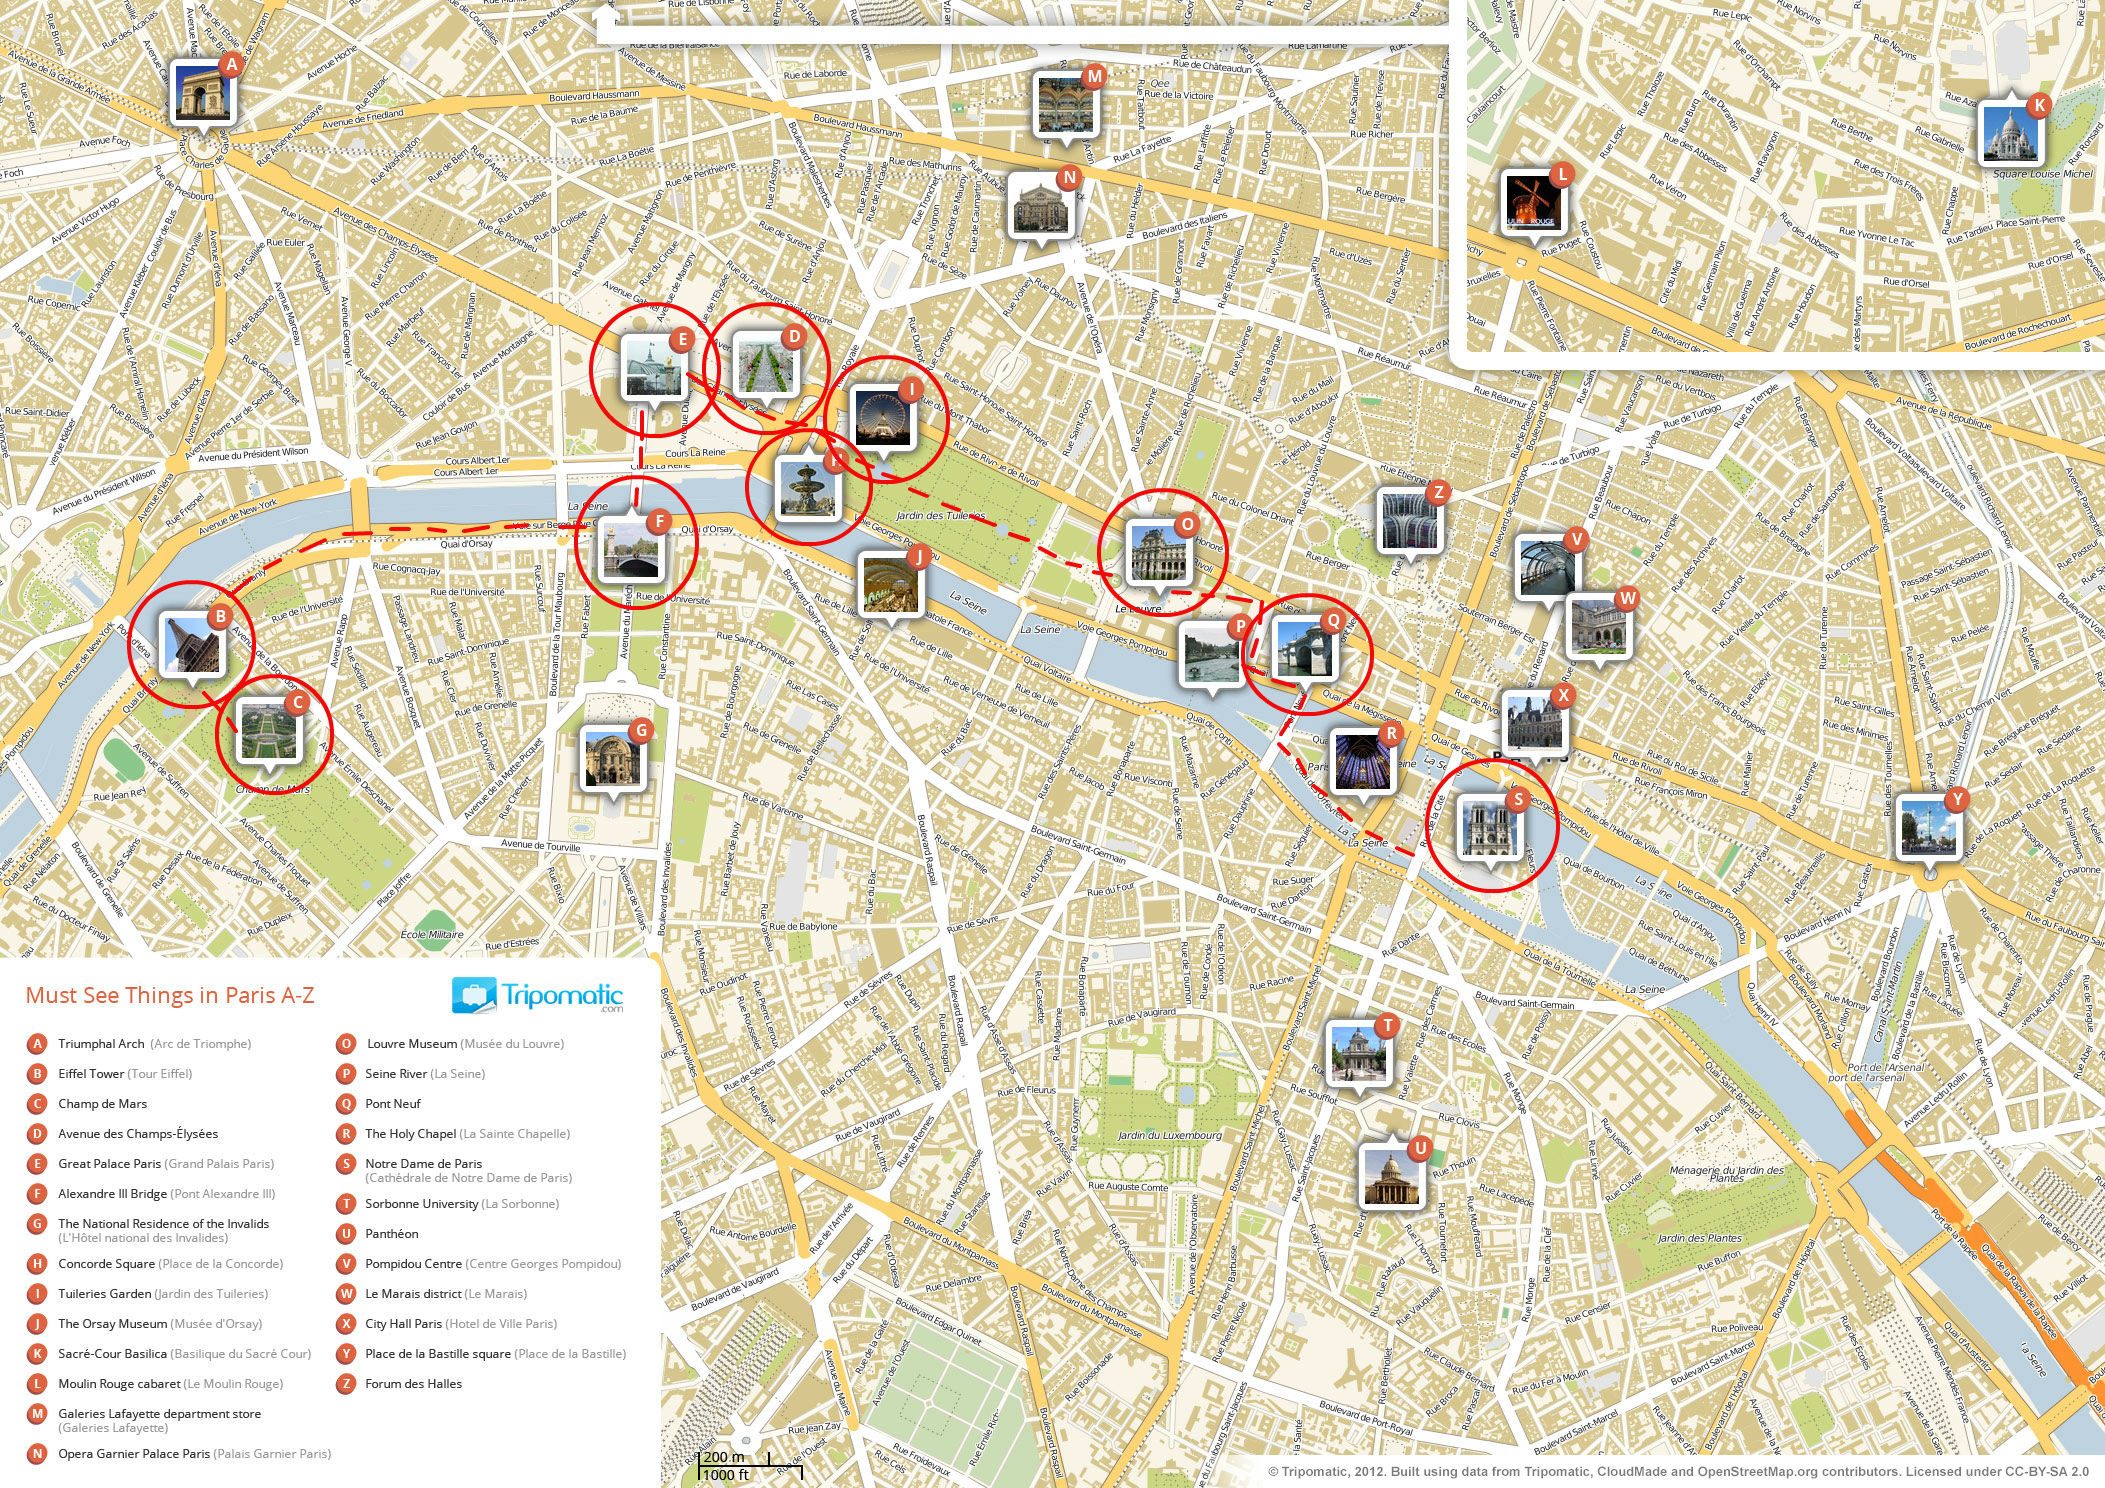 Road map of Paris with major tourist attractions circled, numbered, with small images of each.